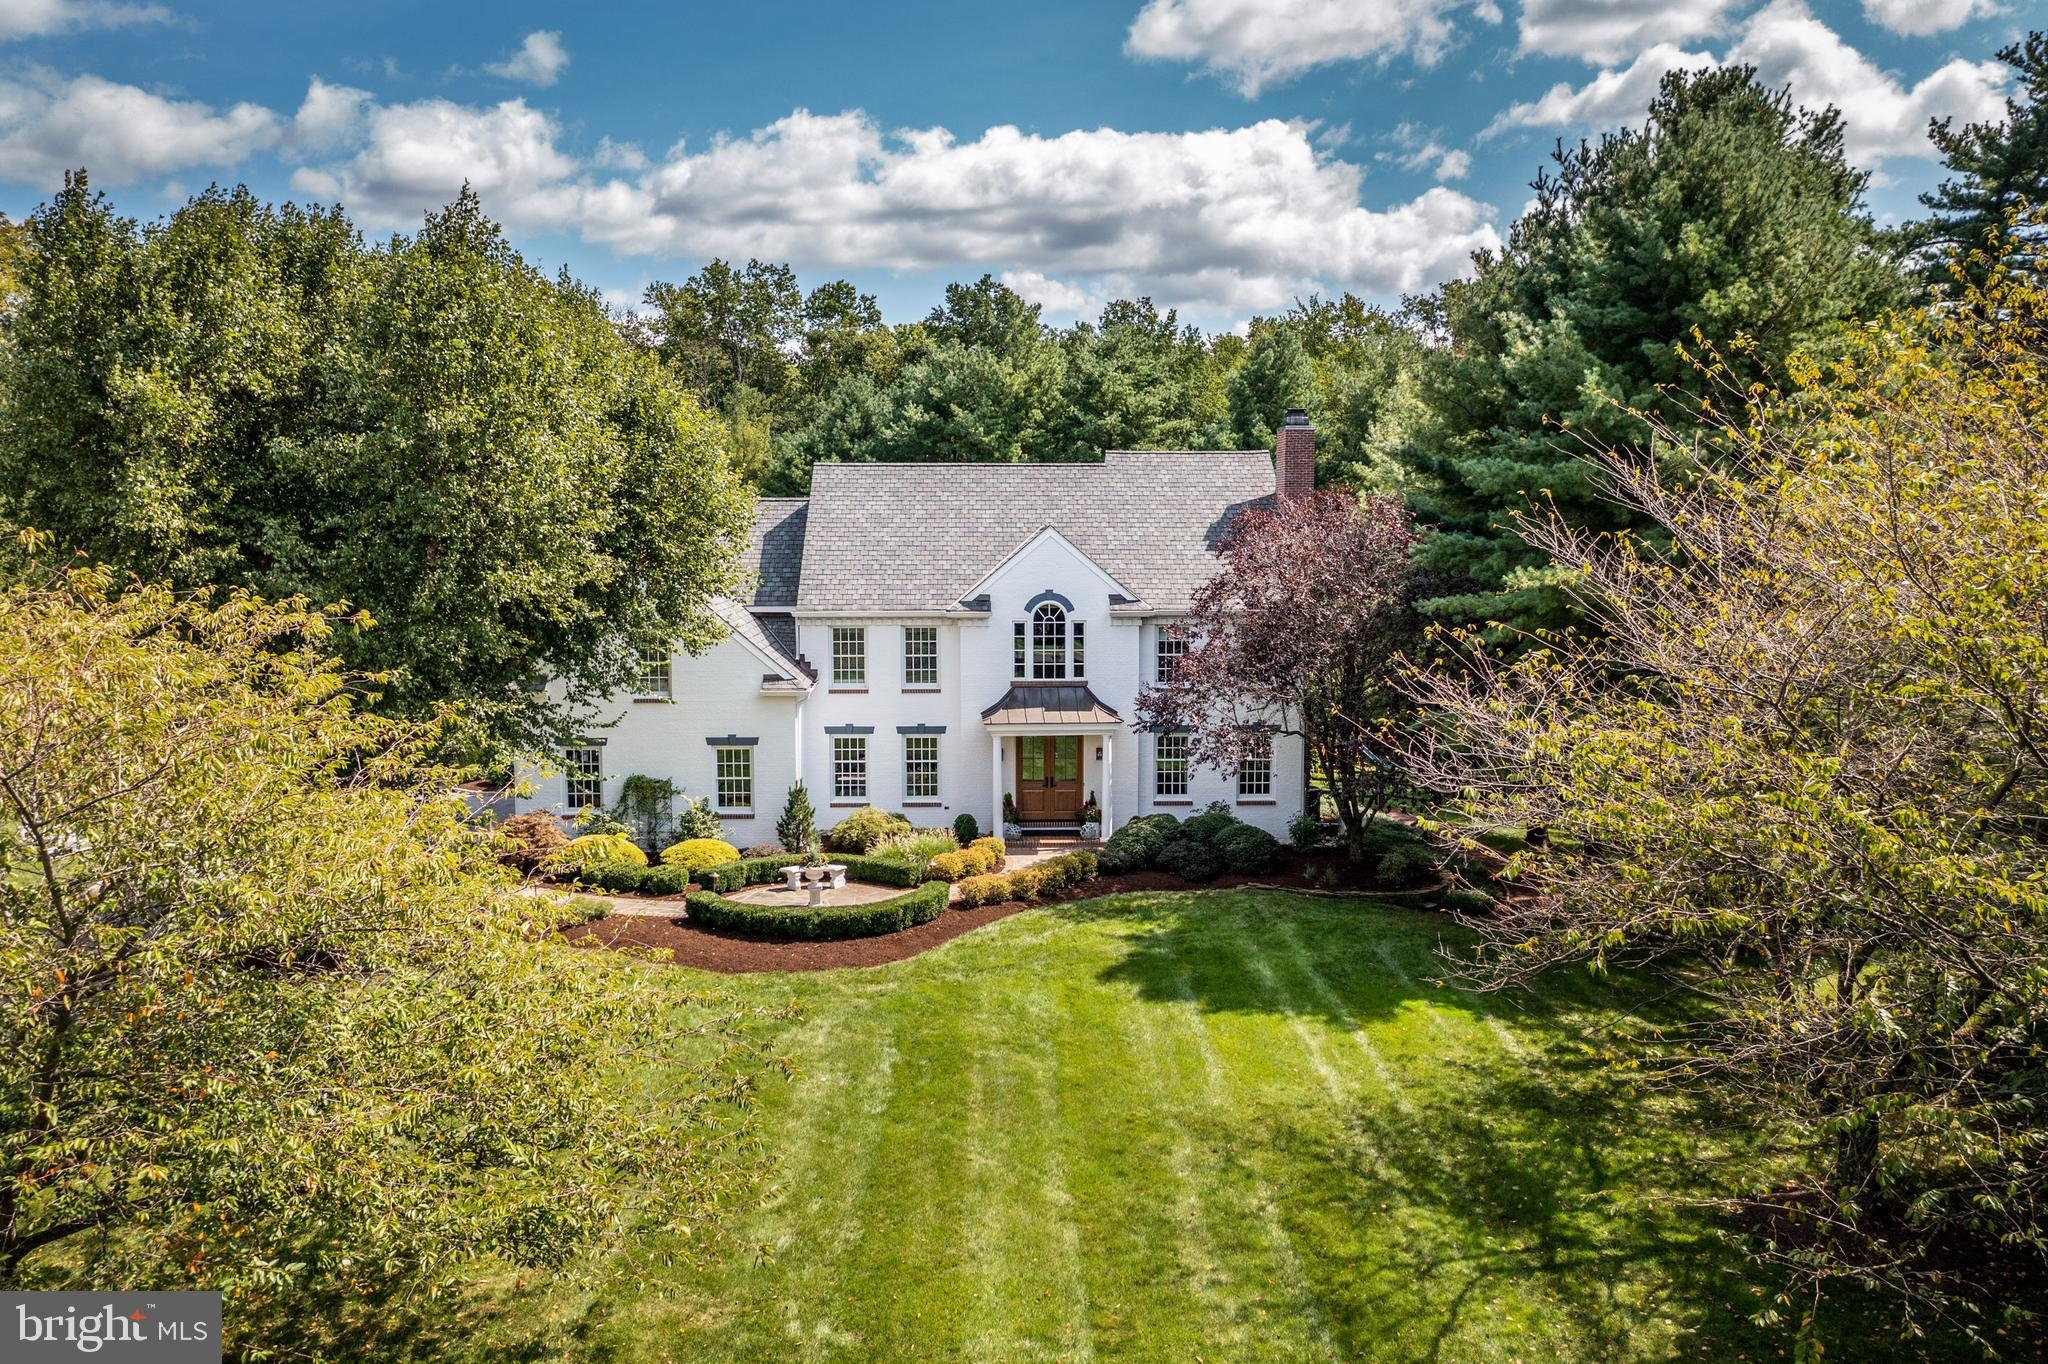 The beauty and elegance of this home in Malvern, located in the community of Fox Ridge, is hard to overstate. Situated in a lush, private setting with mature landscaping, this private oasis has a gorgeous, inground pool. The interior of the renovated, meticulously cared-for home, with its gracious touches including a Palladian window, hardwood flooring, and two fireplaces, is welcoming and lovely. And, with a newly renovated exterior, including roof and Hardie plank siding, it is built to last. The home's location, within the excellent Great Valley School District and close to all major thoroughfares and the town of Malvern, couples warmth and beauty with an ideal setting.  A beautiful and expansive lawn leads to the front entrance and its two-story, dramatic foyer, with marble floor. The formal living room, with its custom millwork, white-mantel fireplace, and oak flooring, flows into the dining room via French doors. Also a lovely space, the elegant dining room has oak flooring, large windows, and a stunning, coffered ceiling. The home's kitchen overflows with numerous upgrades, perfect for beginner cooks and experienced chefs alike. Special amenities include a six-burner Wolf stove and quartzite countertops. It is a gorgeous room to behold, with its black walnut center island with bar seating and complementary dining nook. Special cabinets with unique hardware, as well as distinctive backsplash and lighting, are wonderful touches. The open kitchen flows seamlessly into the family room, with its cathedral ceiling, white brick fireplace, pretty floors, and large windows. The first level has a powder room as well as an office, with large windows and hardwood floors. The laundry/mudroom has access to the three-car garage. From the center hall, a gracious staircase leads to the second level: a well-planned space with a main bedroom and bath, three additional bedrooms, and two renovated, beautiful hall baths. The main suite is a luxurious retreat, with its sumptuous, e